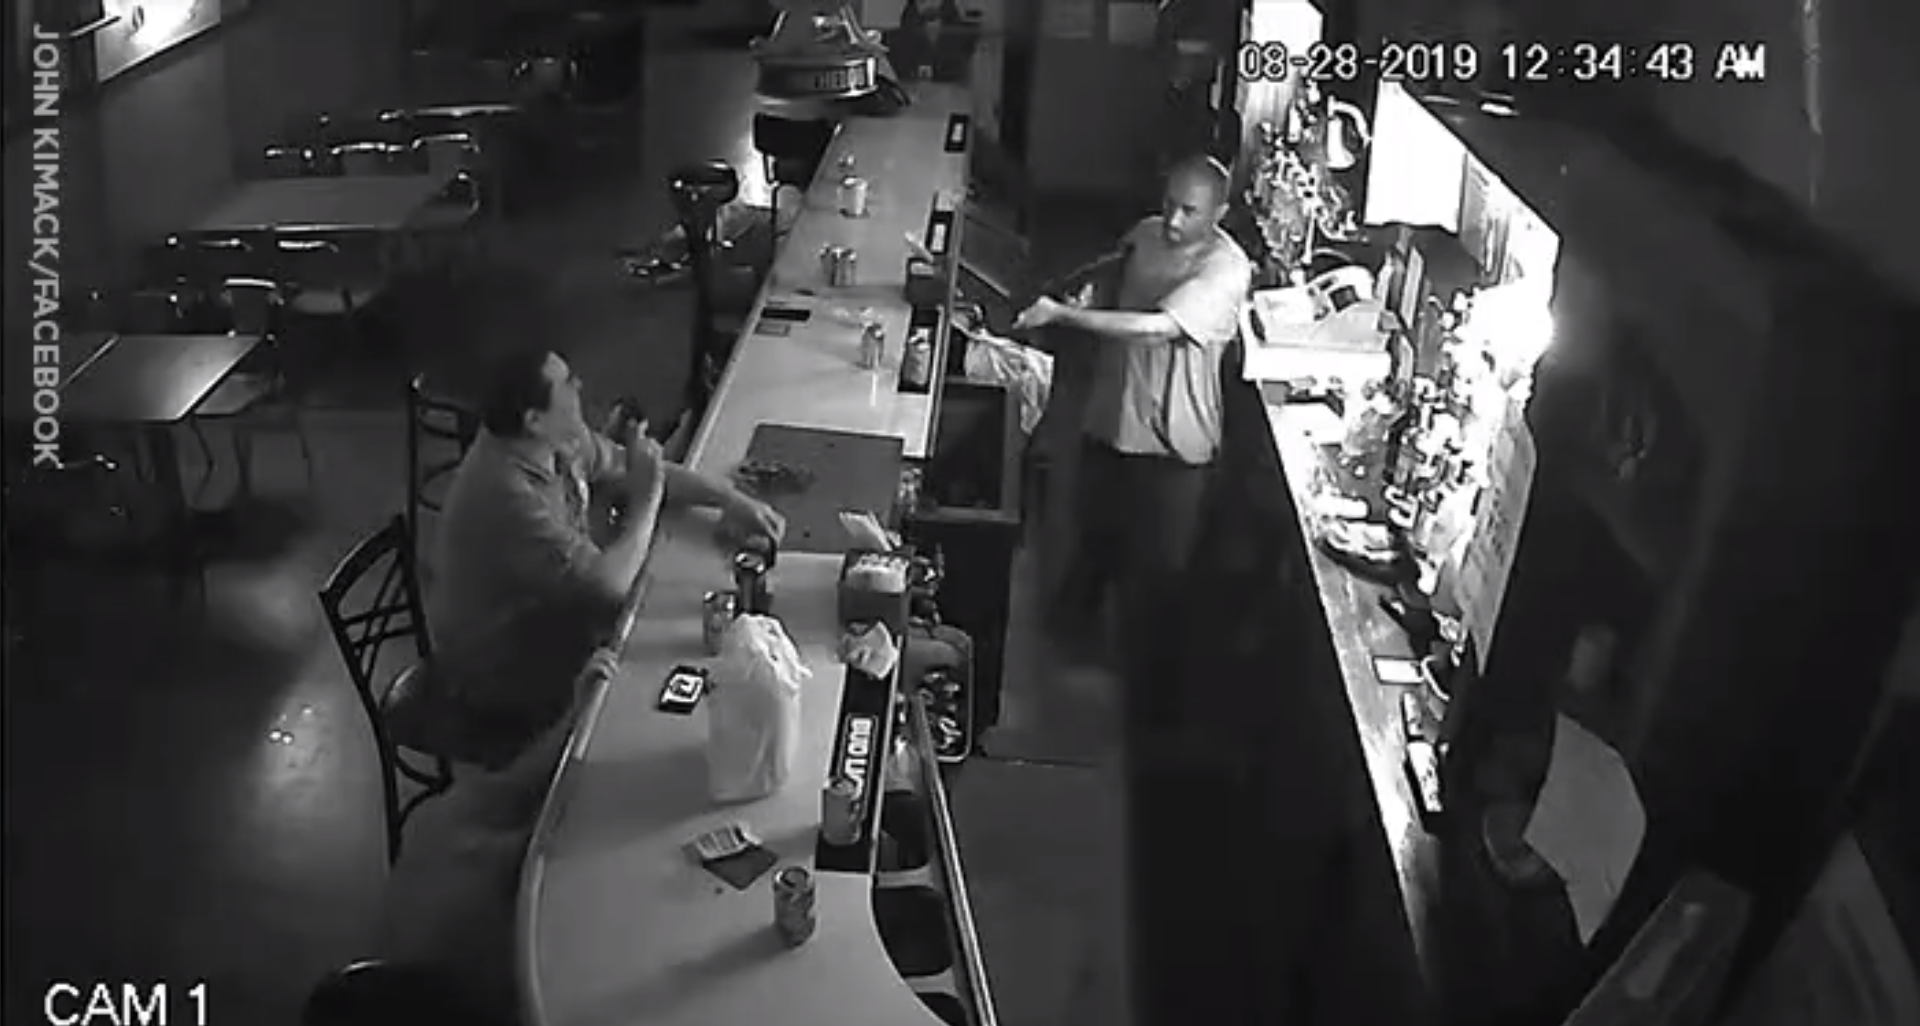 Man Who Finished Cigarette During Robbery Says He'd Do It Again